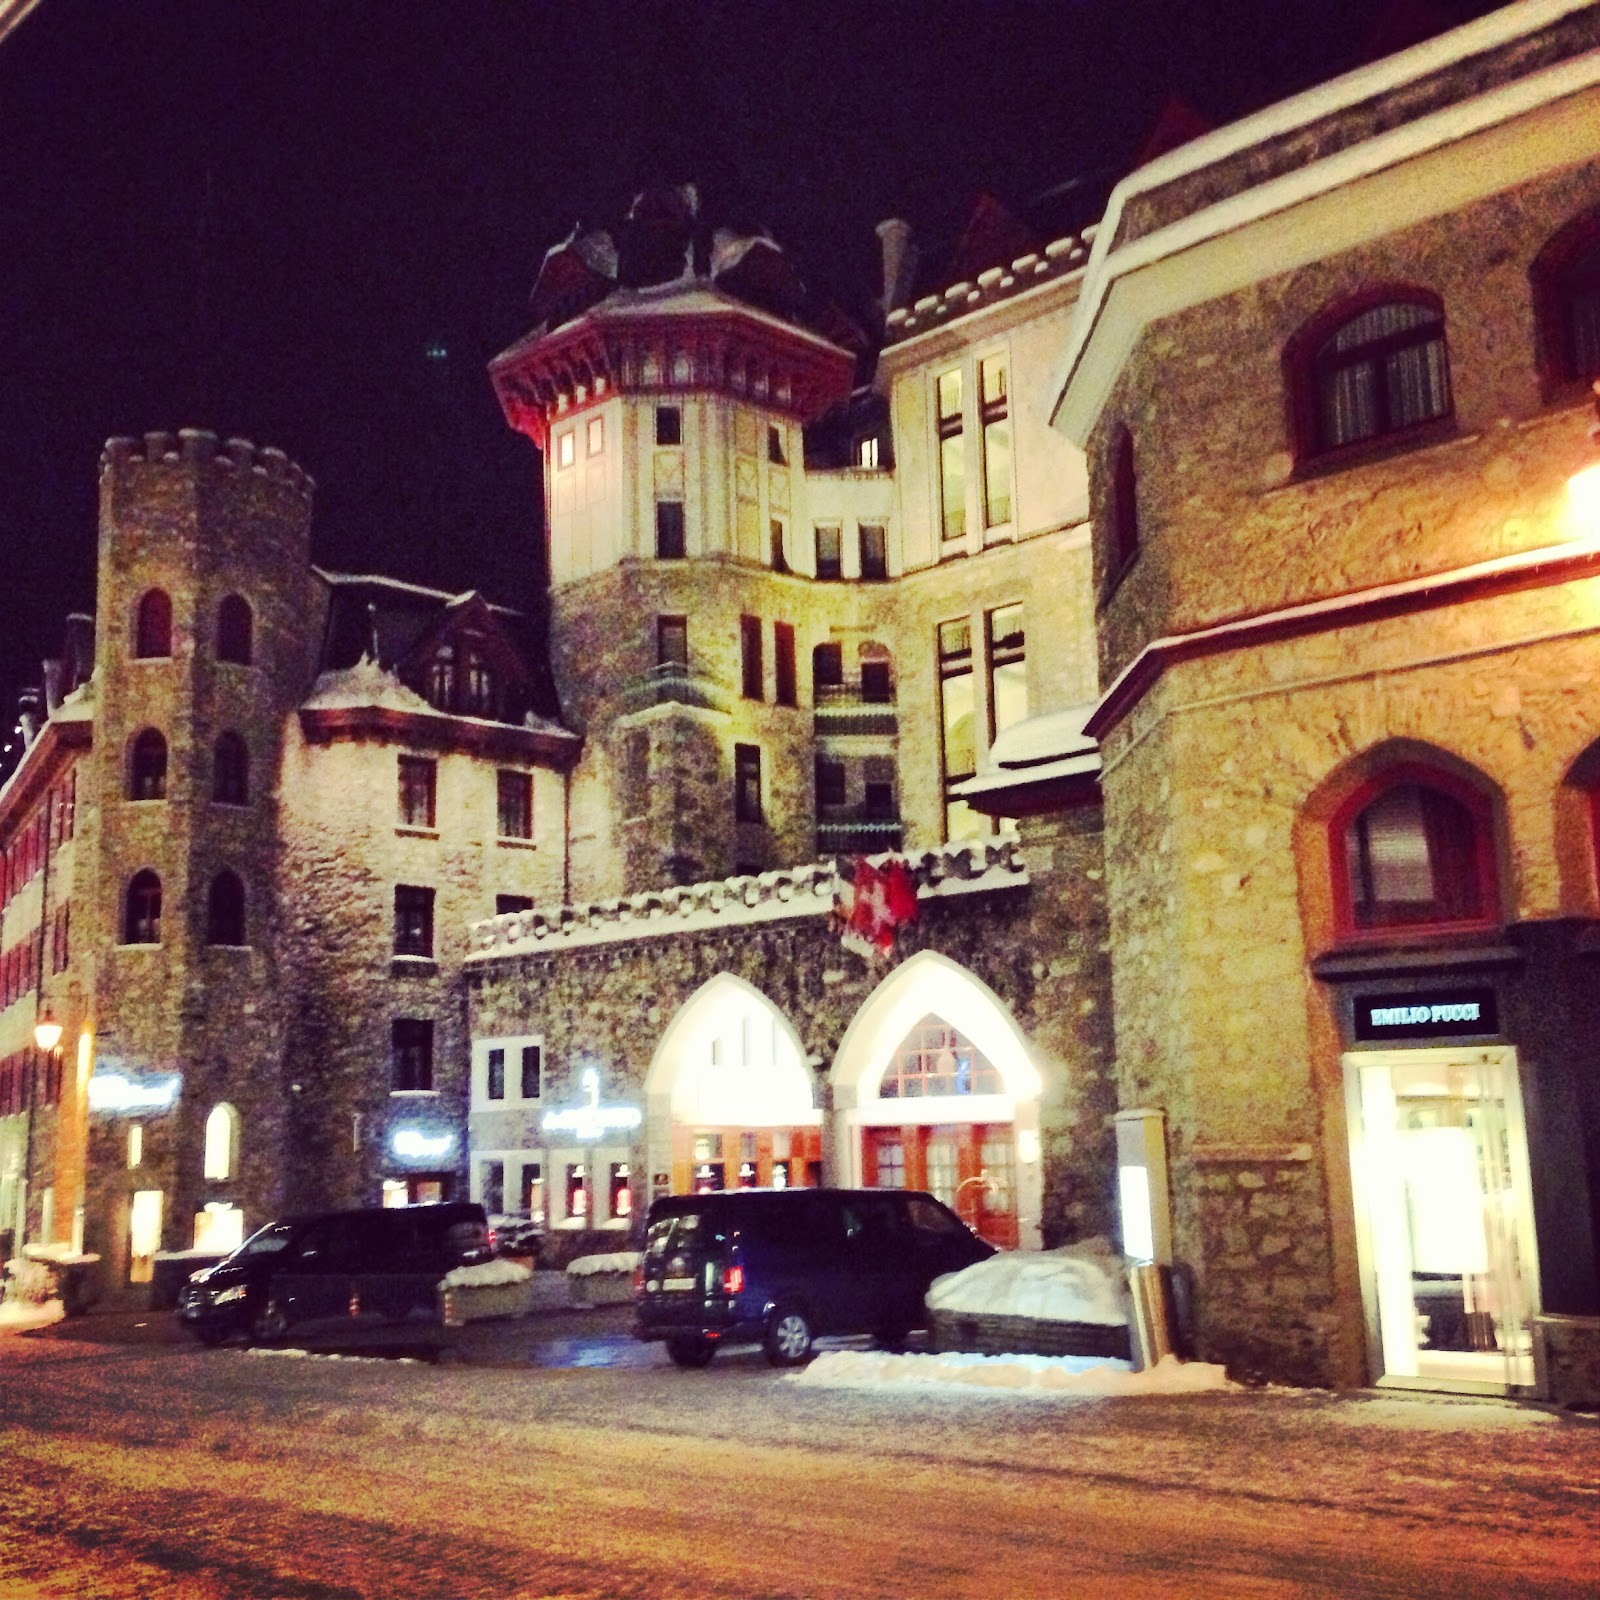 badrutt's palace hotel building seen at night during wintertime. the hotel's classical architecture, castle style and famous tower. Be sure to see it on an Italy road trip